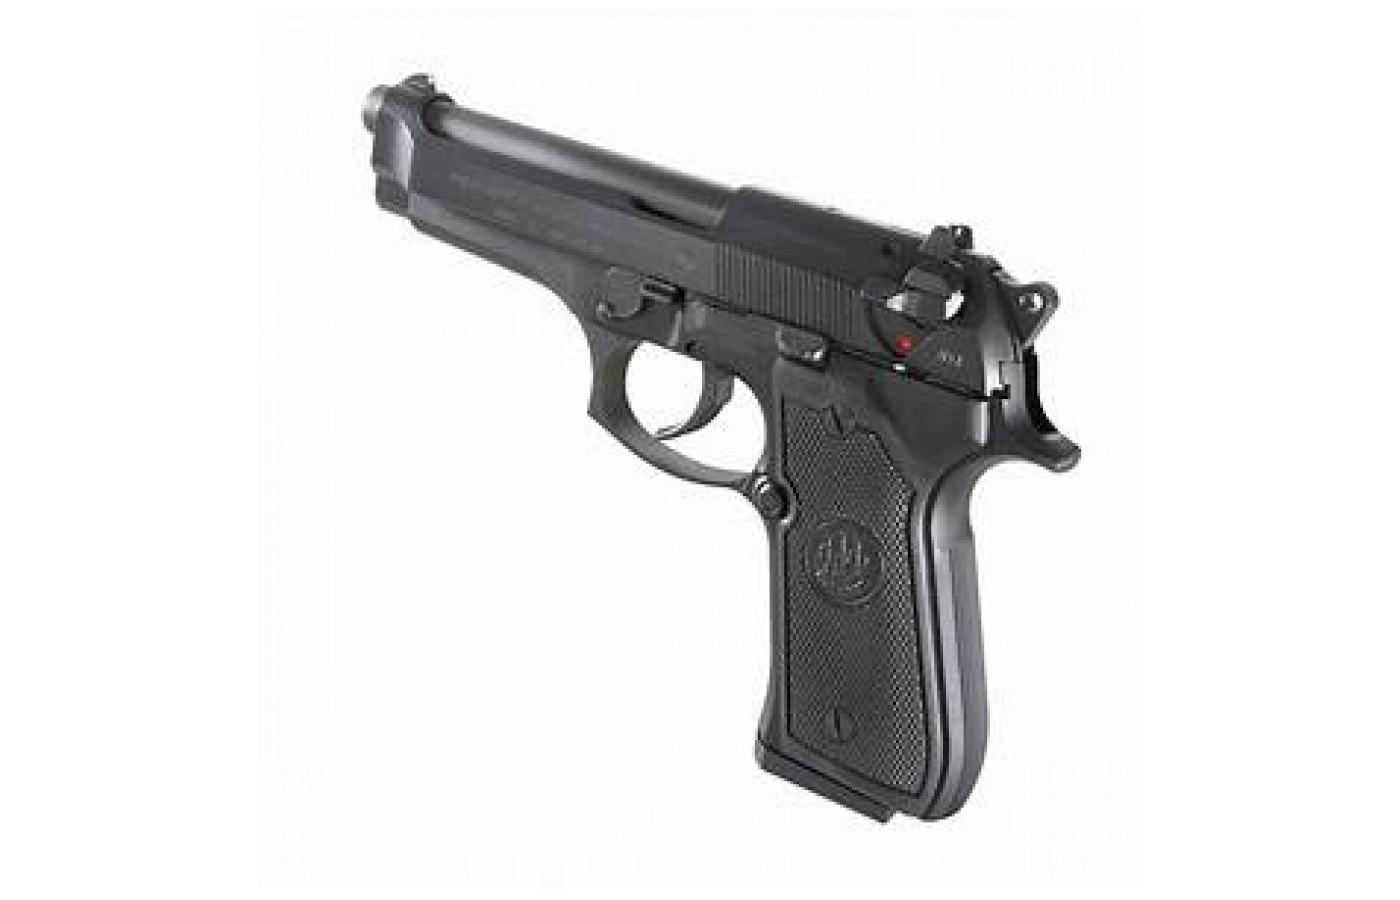 The gun has a Bruniton finish that is unique in many aspects and provides superior corrosion resistance.